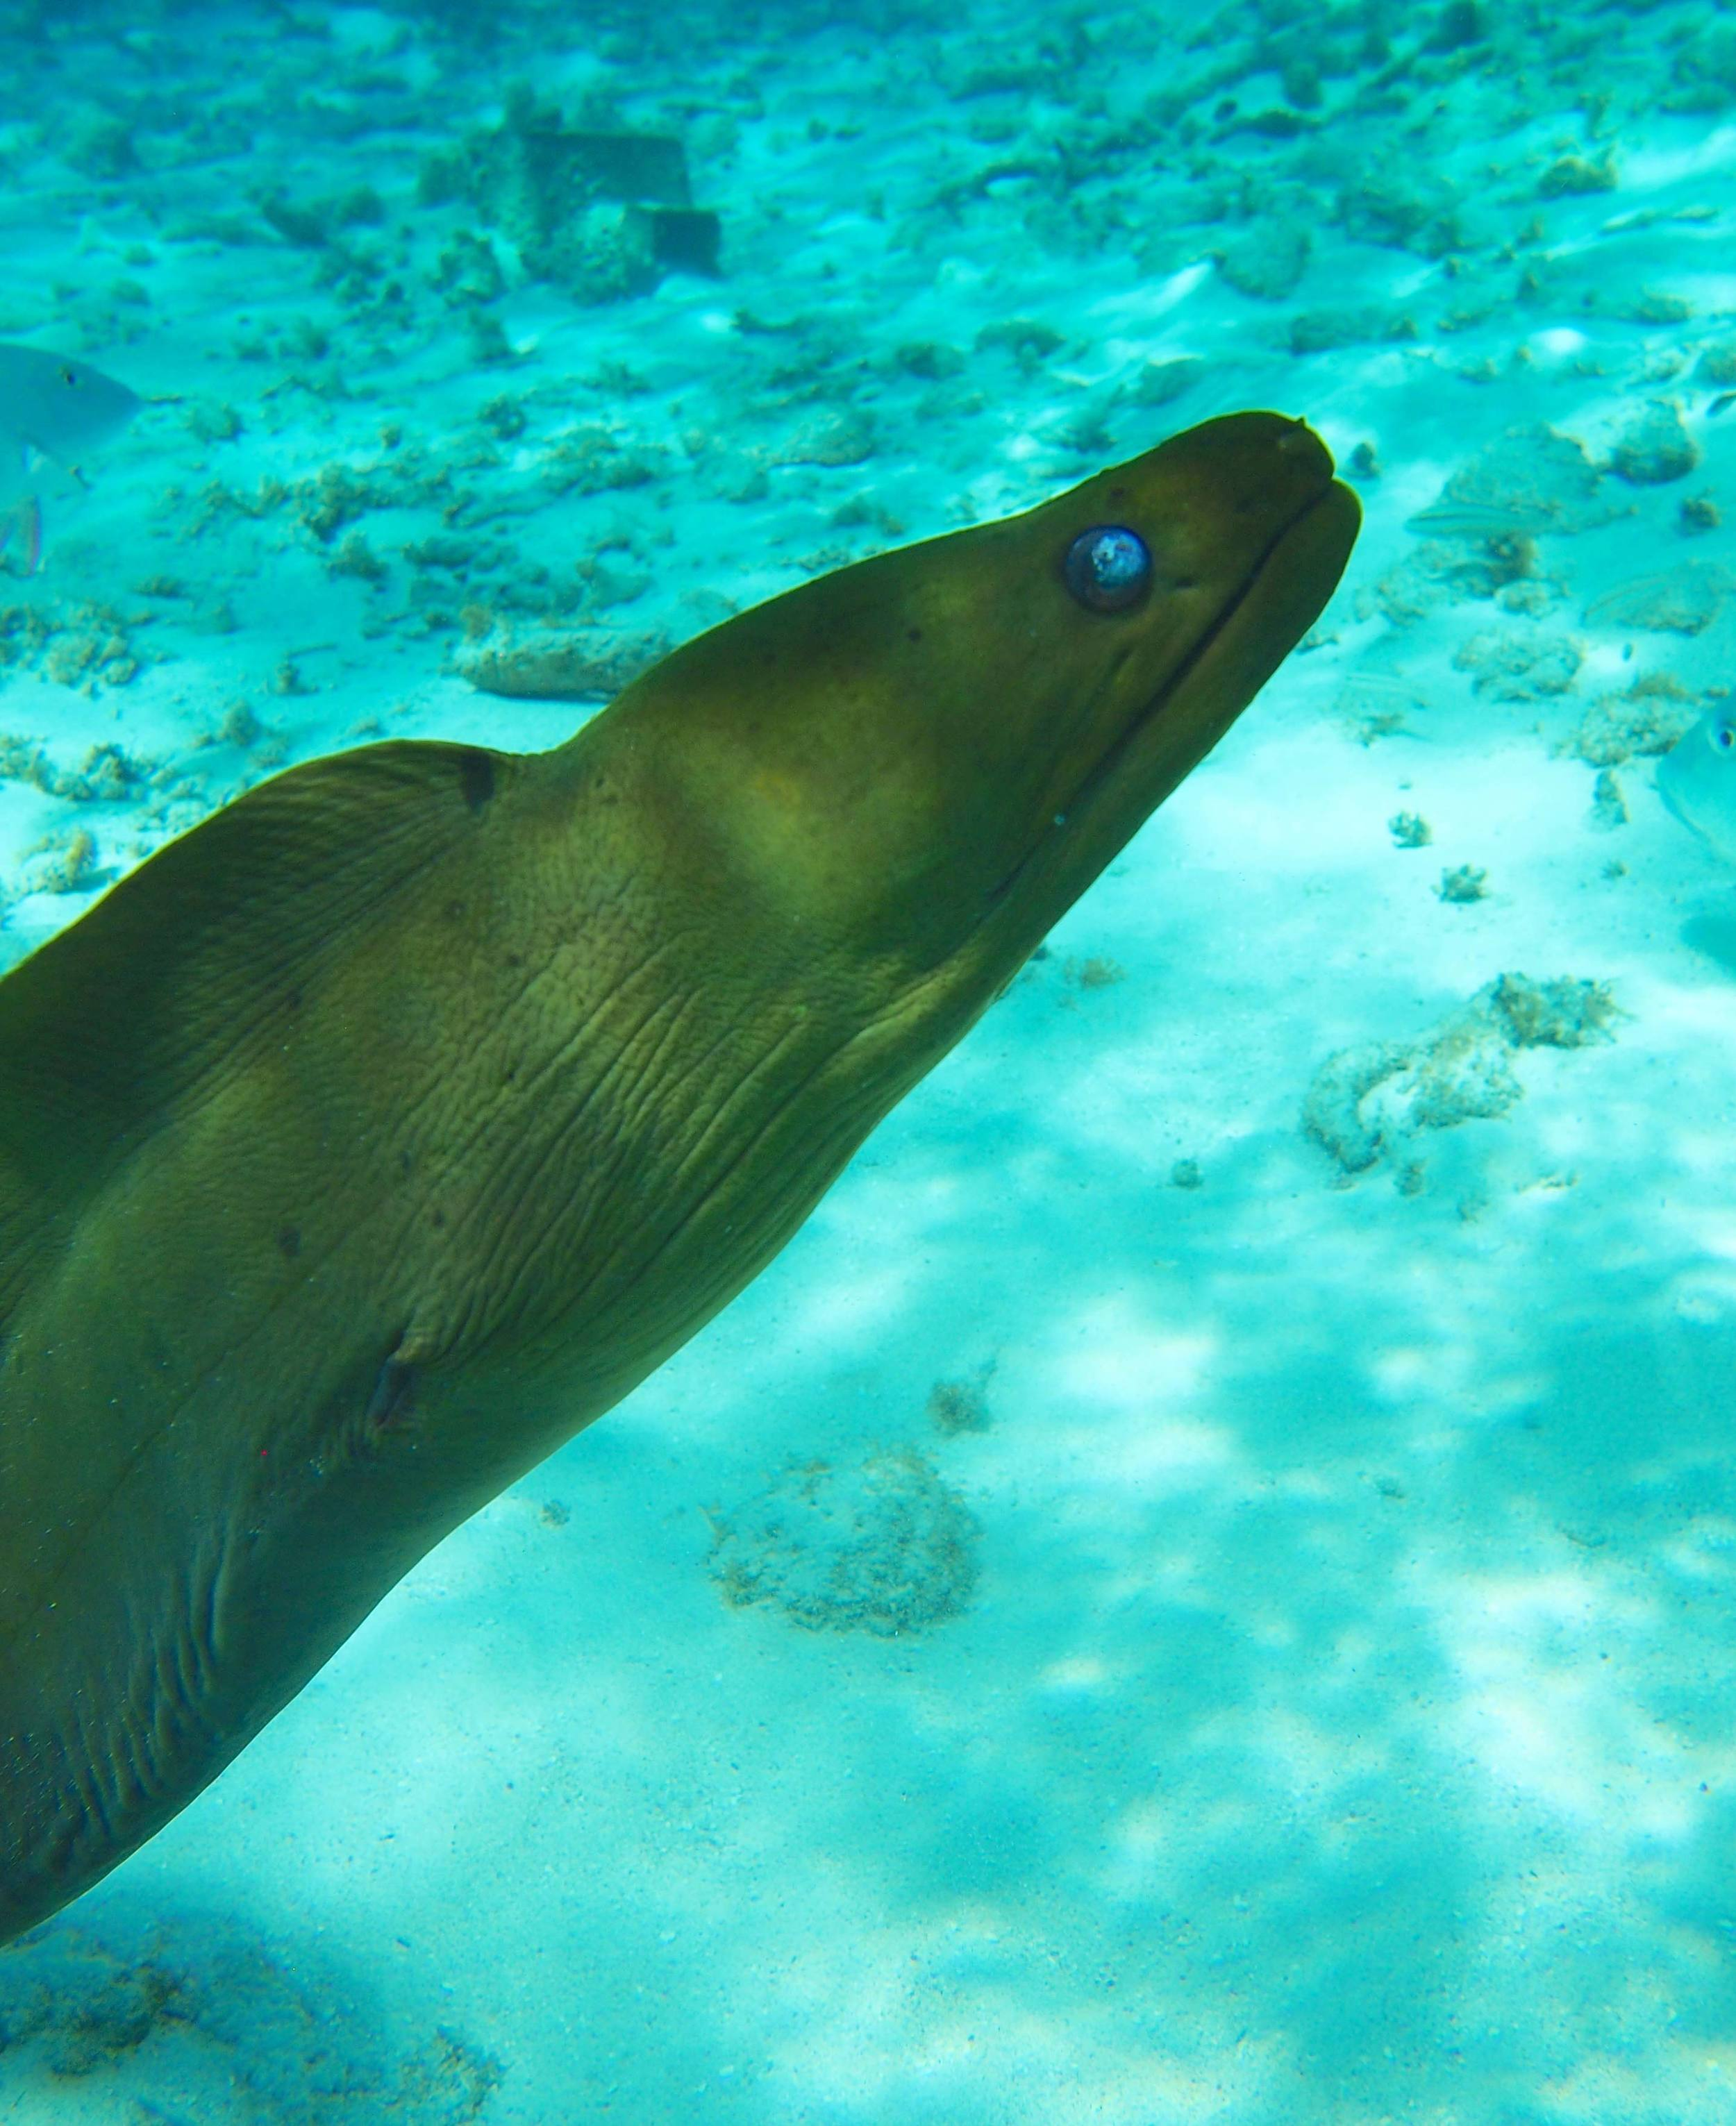 The Moray Eel at Grand Cayman's Reef - ain't she a beauty?